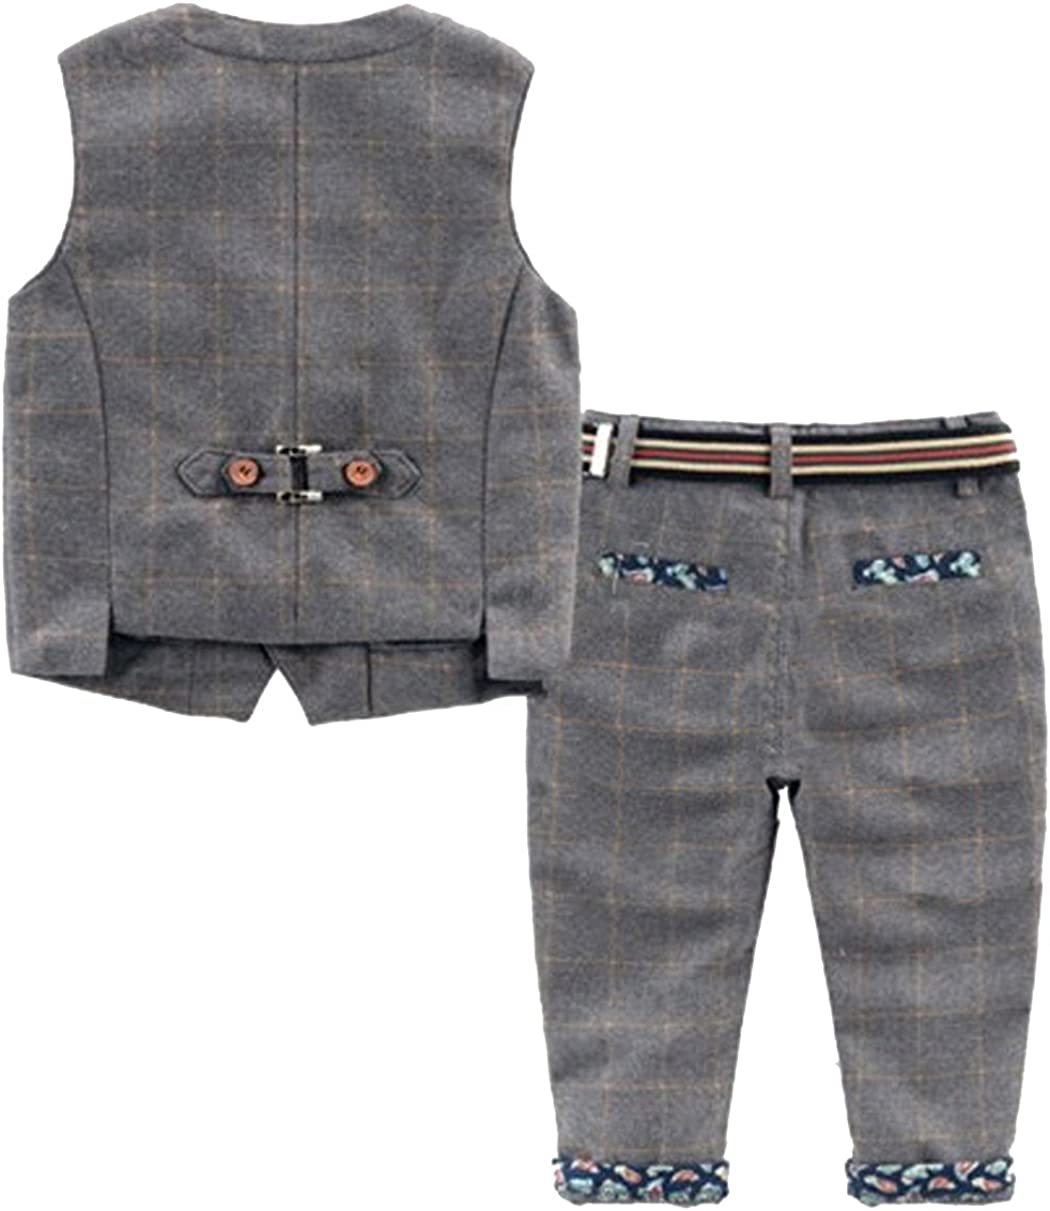 YUFAN Little Boys Casual Vest /& Pants 2 Pieces with Floral Pattern Gray /& Navy 2 Colors